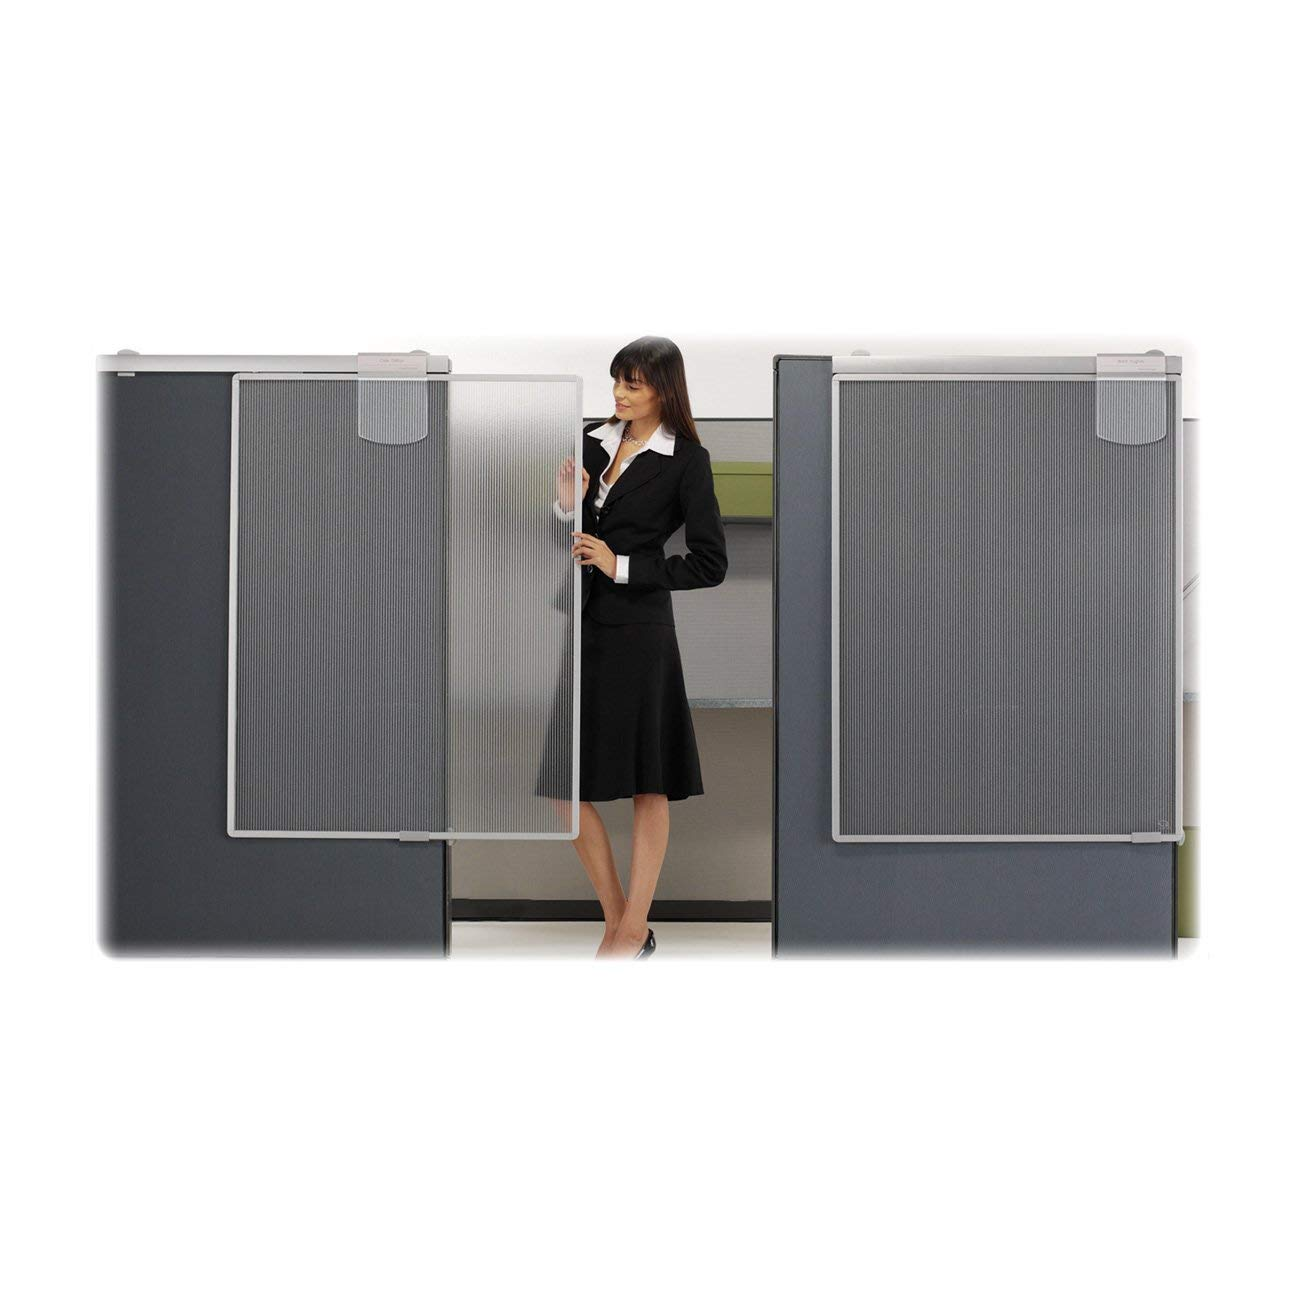 Quartet Workstation Privacy Screen, 36 x 48 Inches, Sliding, Partial Length (WPS1000) (Renewed)